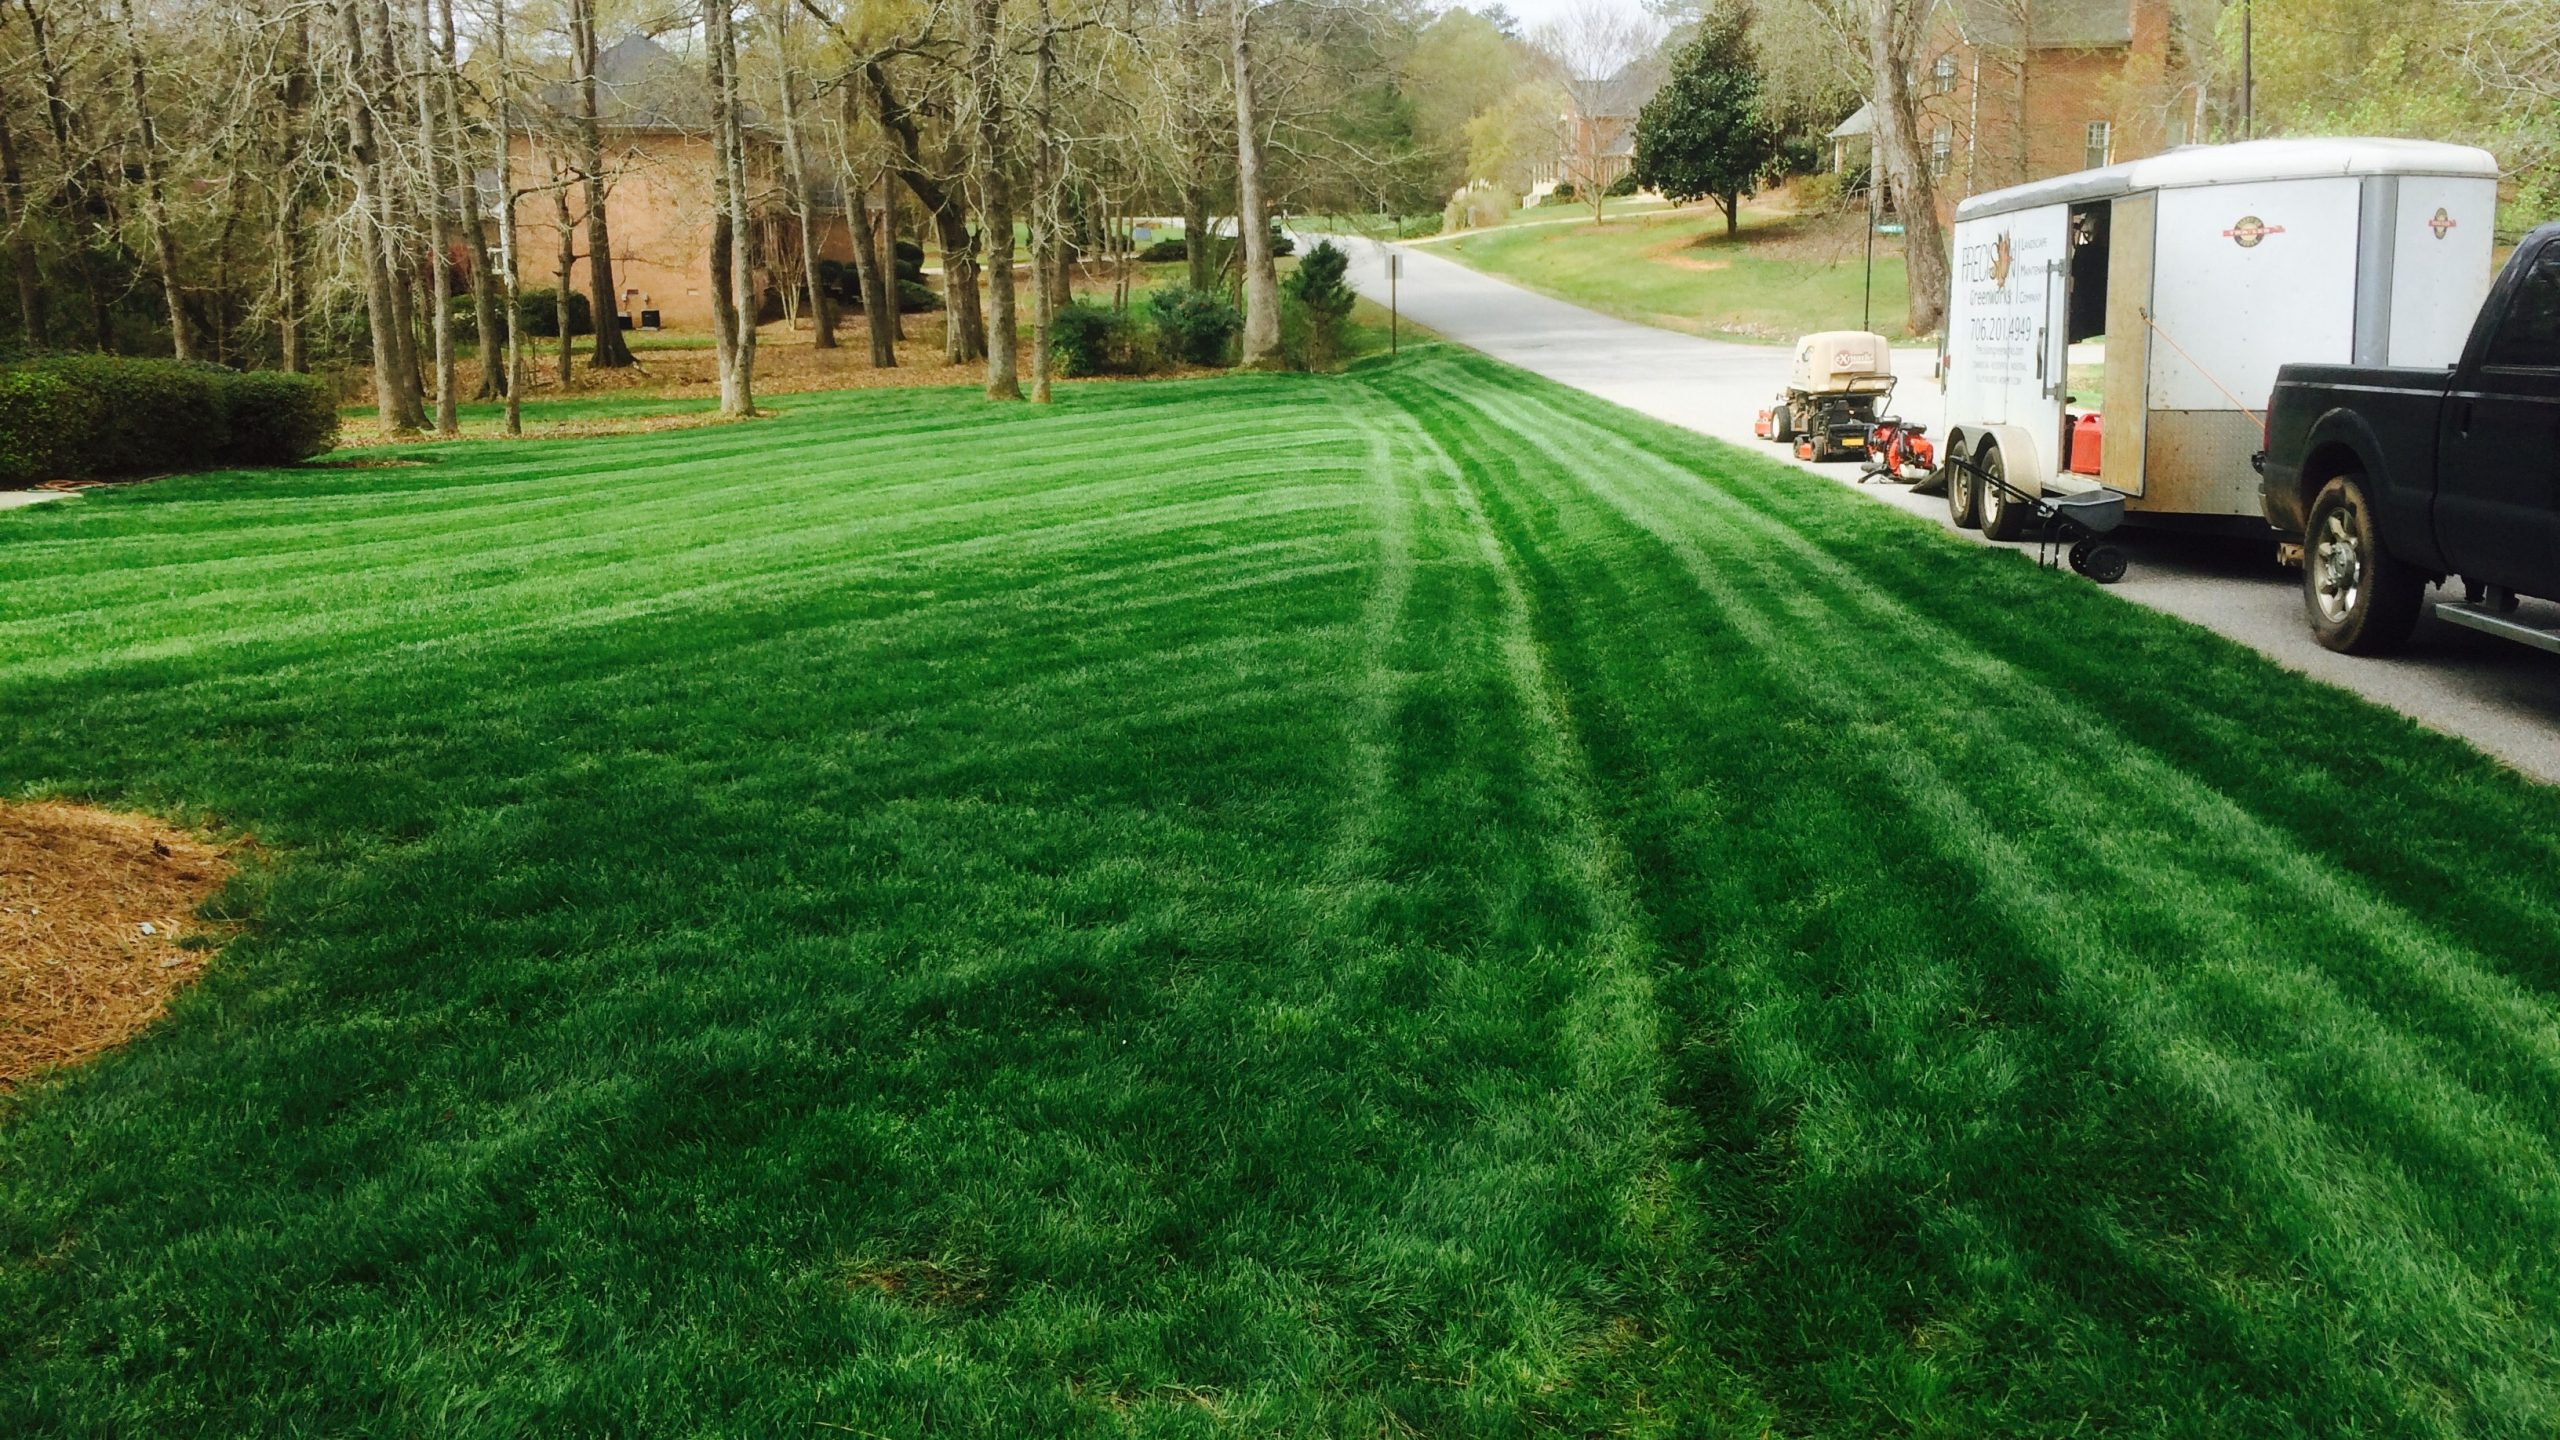 Straight And Diagonal Lawn Stripes With GreenWorks EcoScapes Lawn Care Equipment And Electric Mowers